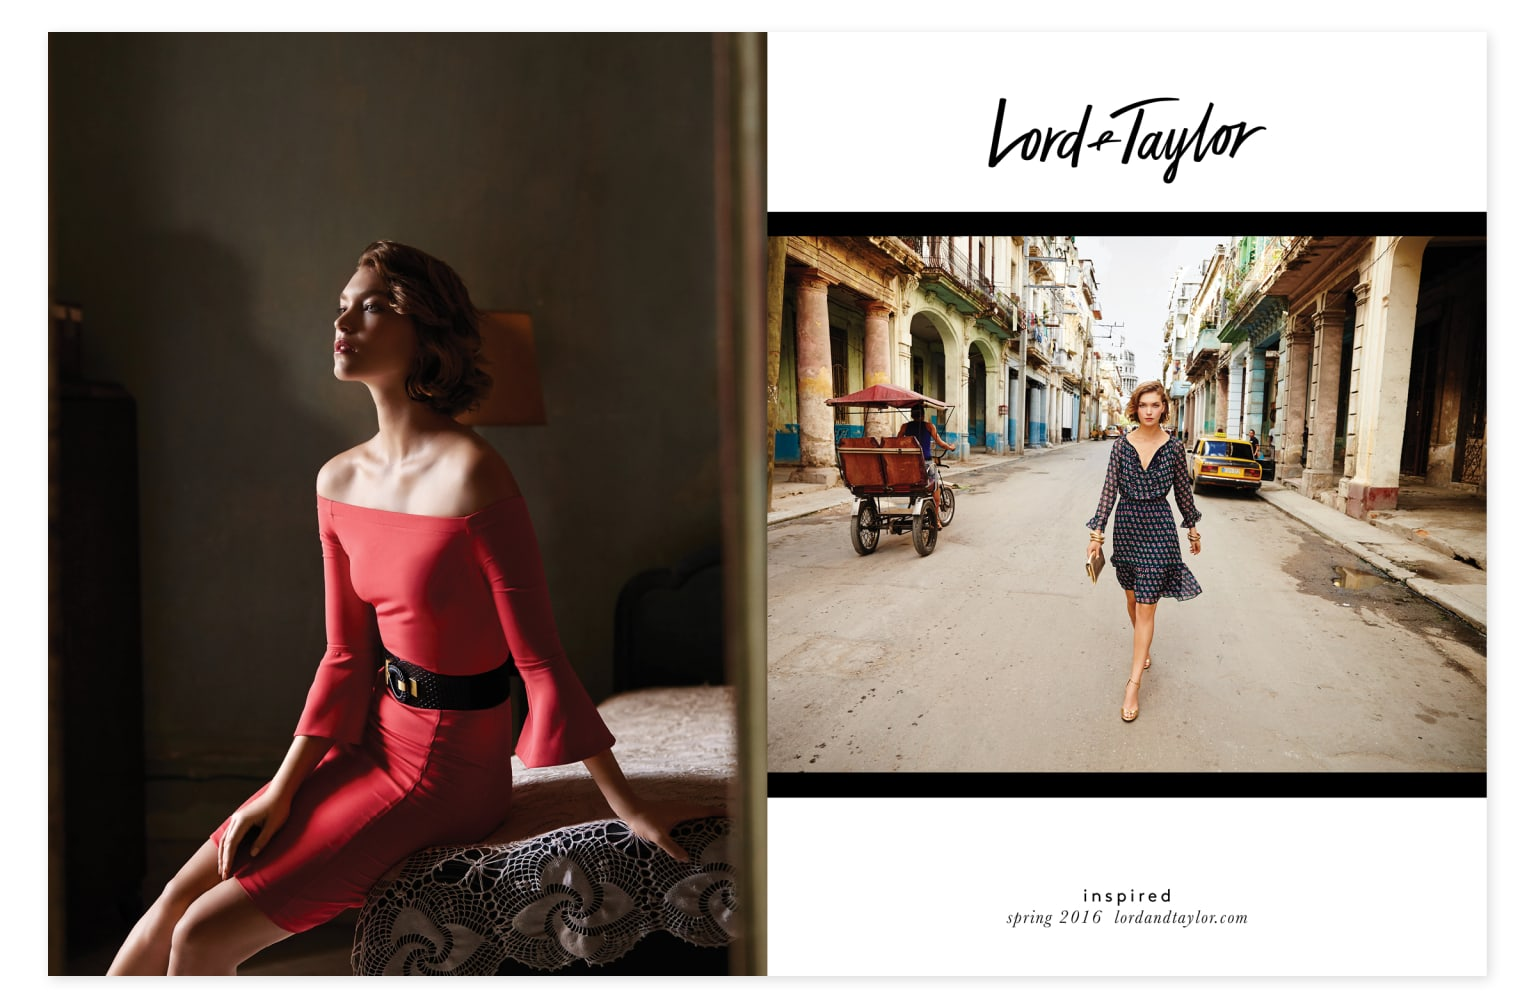 Lord & Taylor Spring 2016